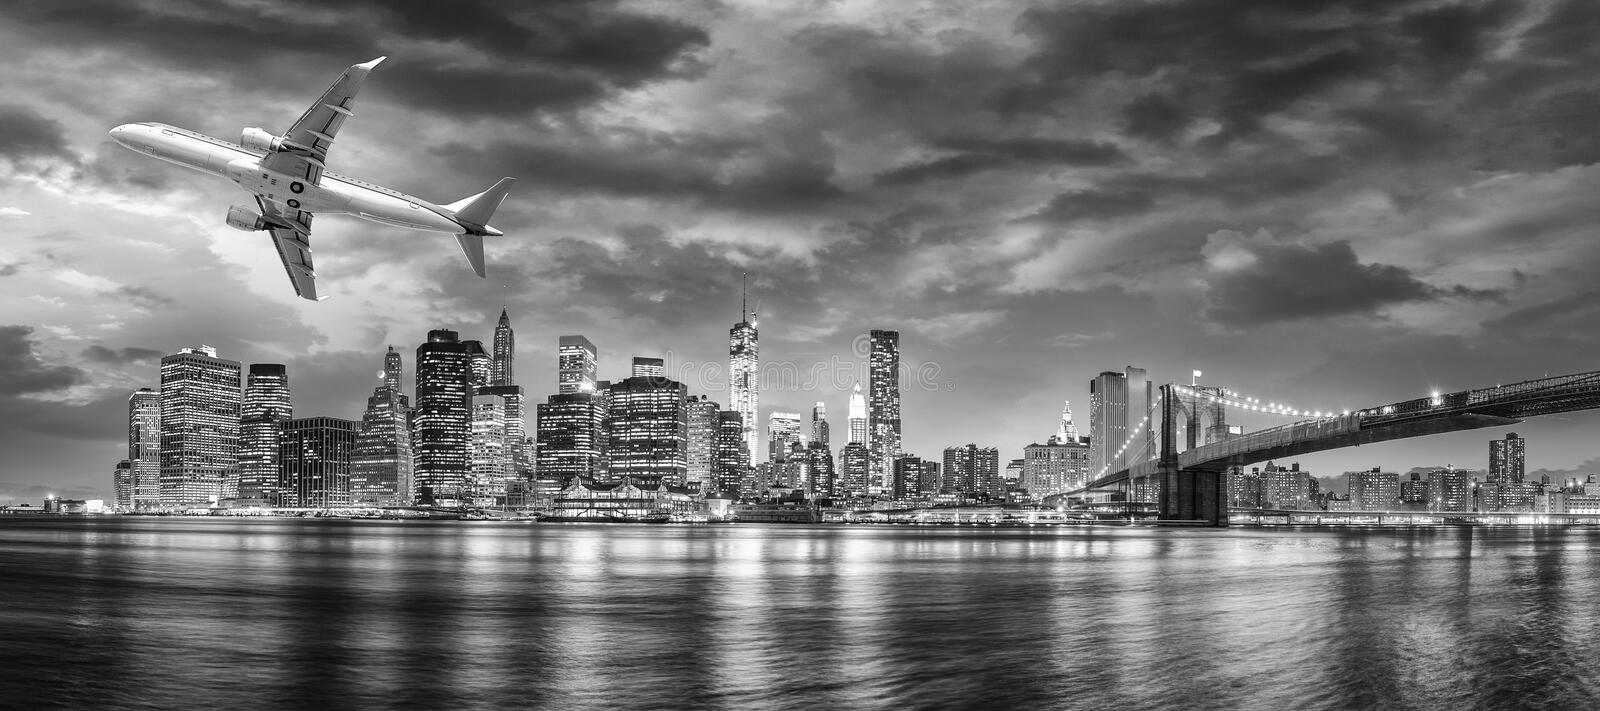 Black and white view of airplane overflying New York City royalty free stock image